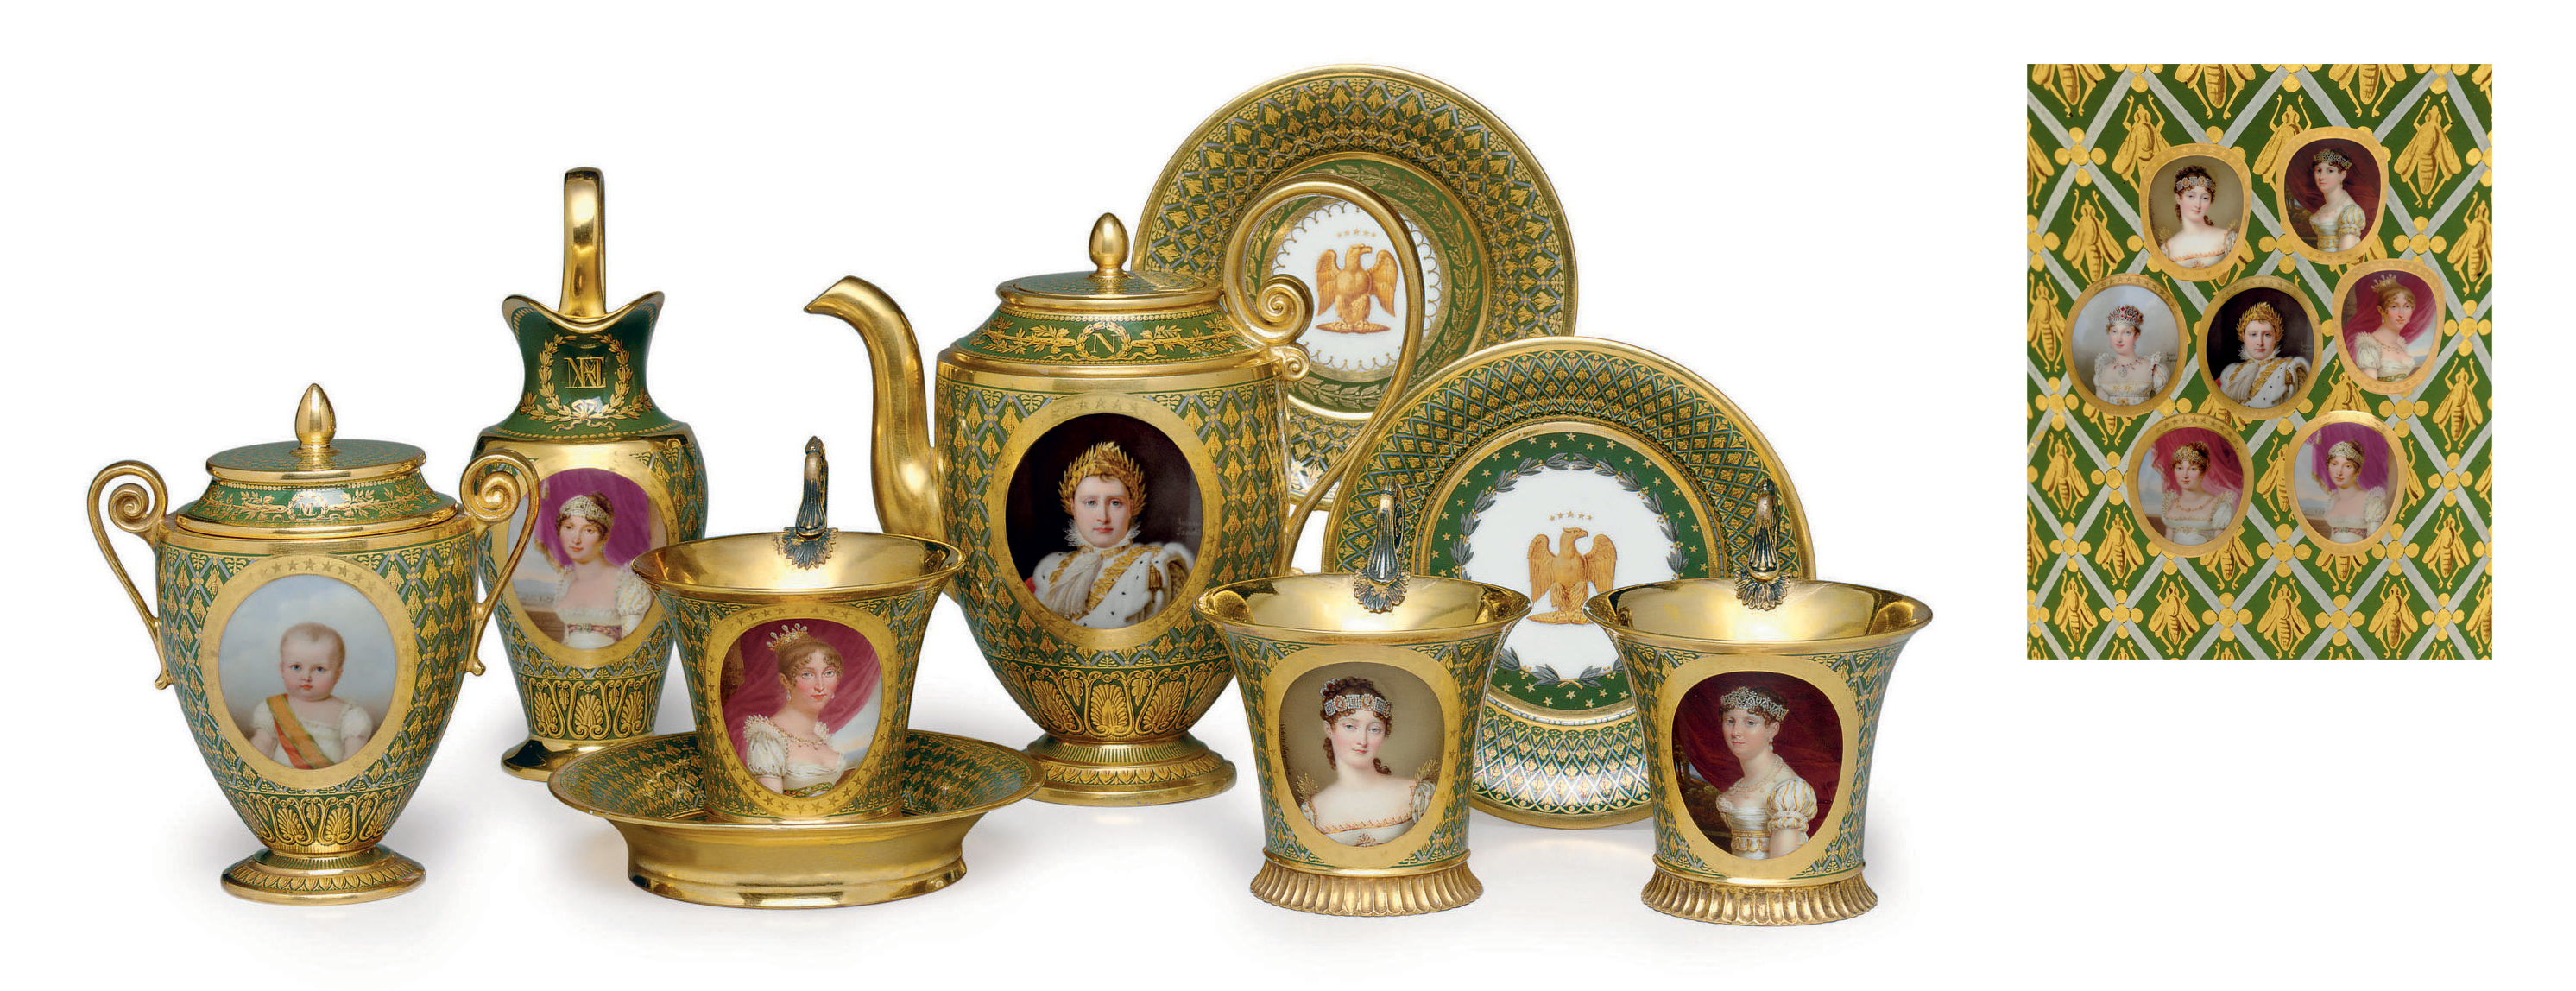 A SEVRES (HARD-PASTE) PORCELAIN CHROME-GREEN GROUND PART TEA SERVICE (CABARET 'BONAPARTE')